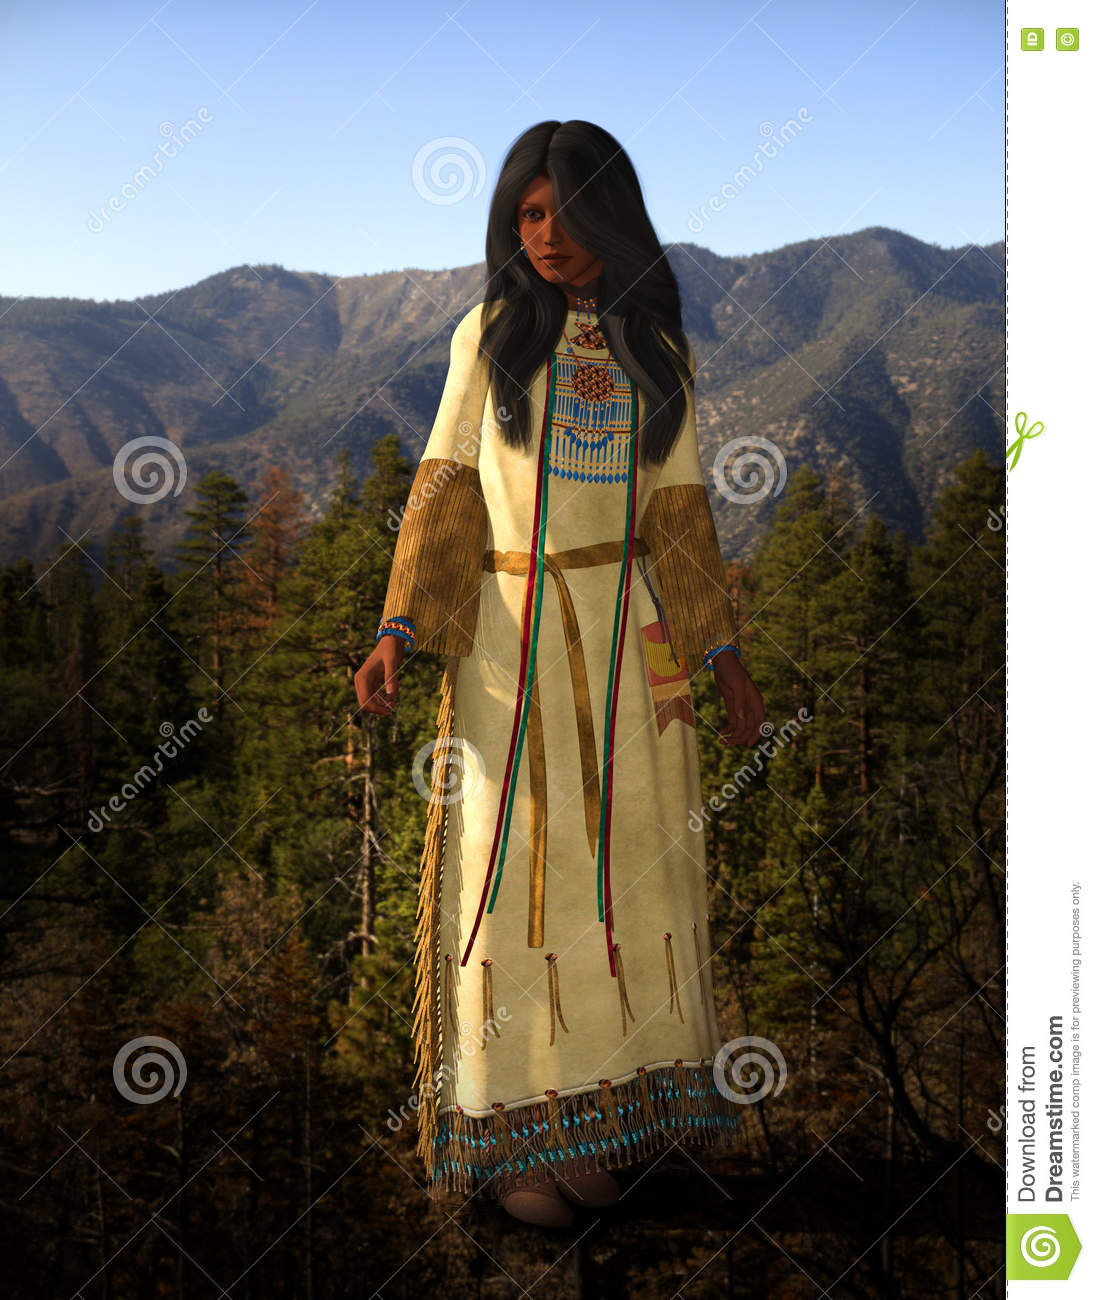 Cheyenne American Indian Woman Illustration